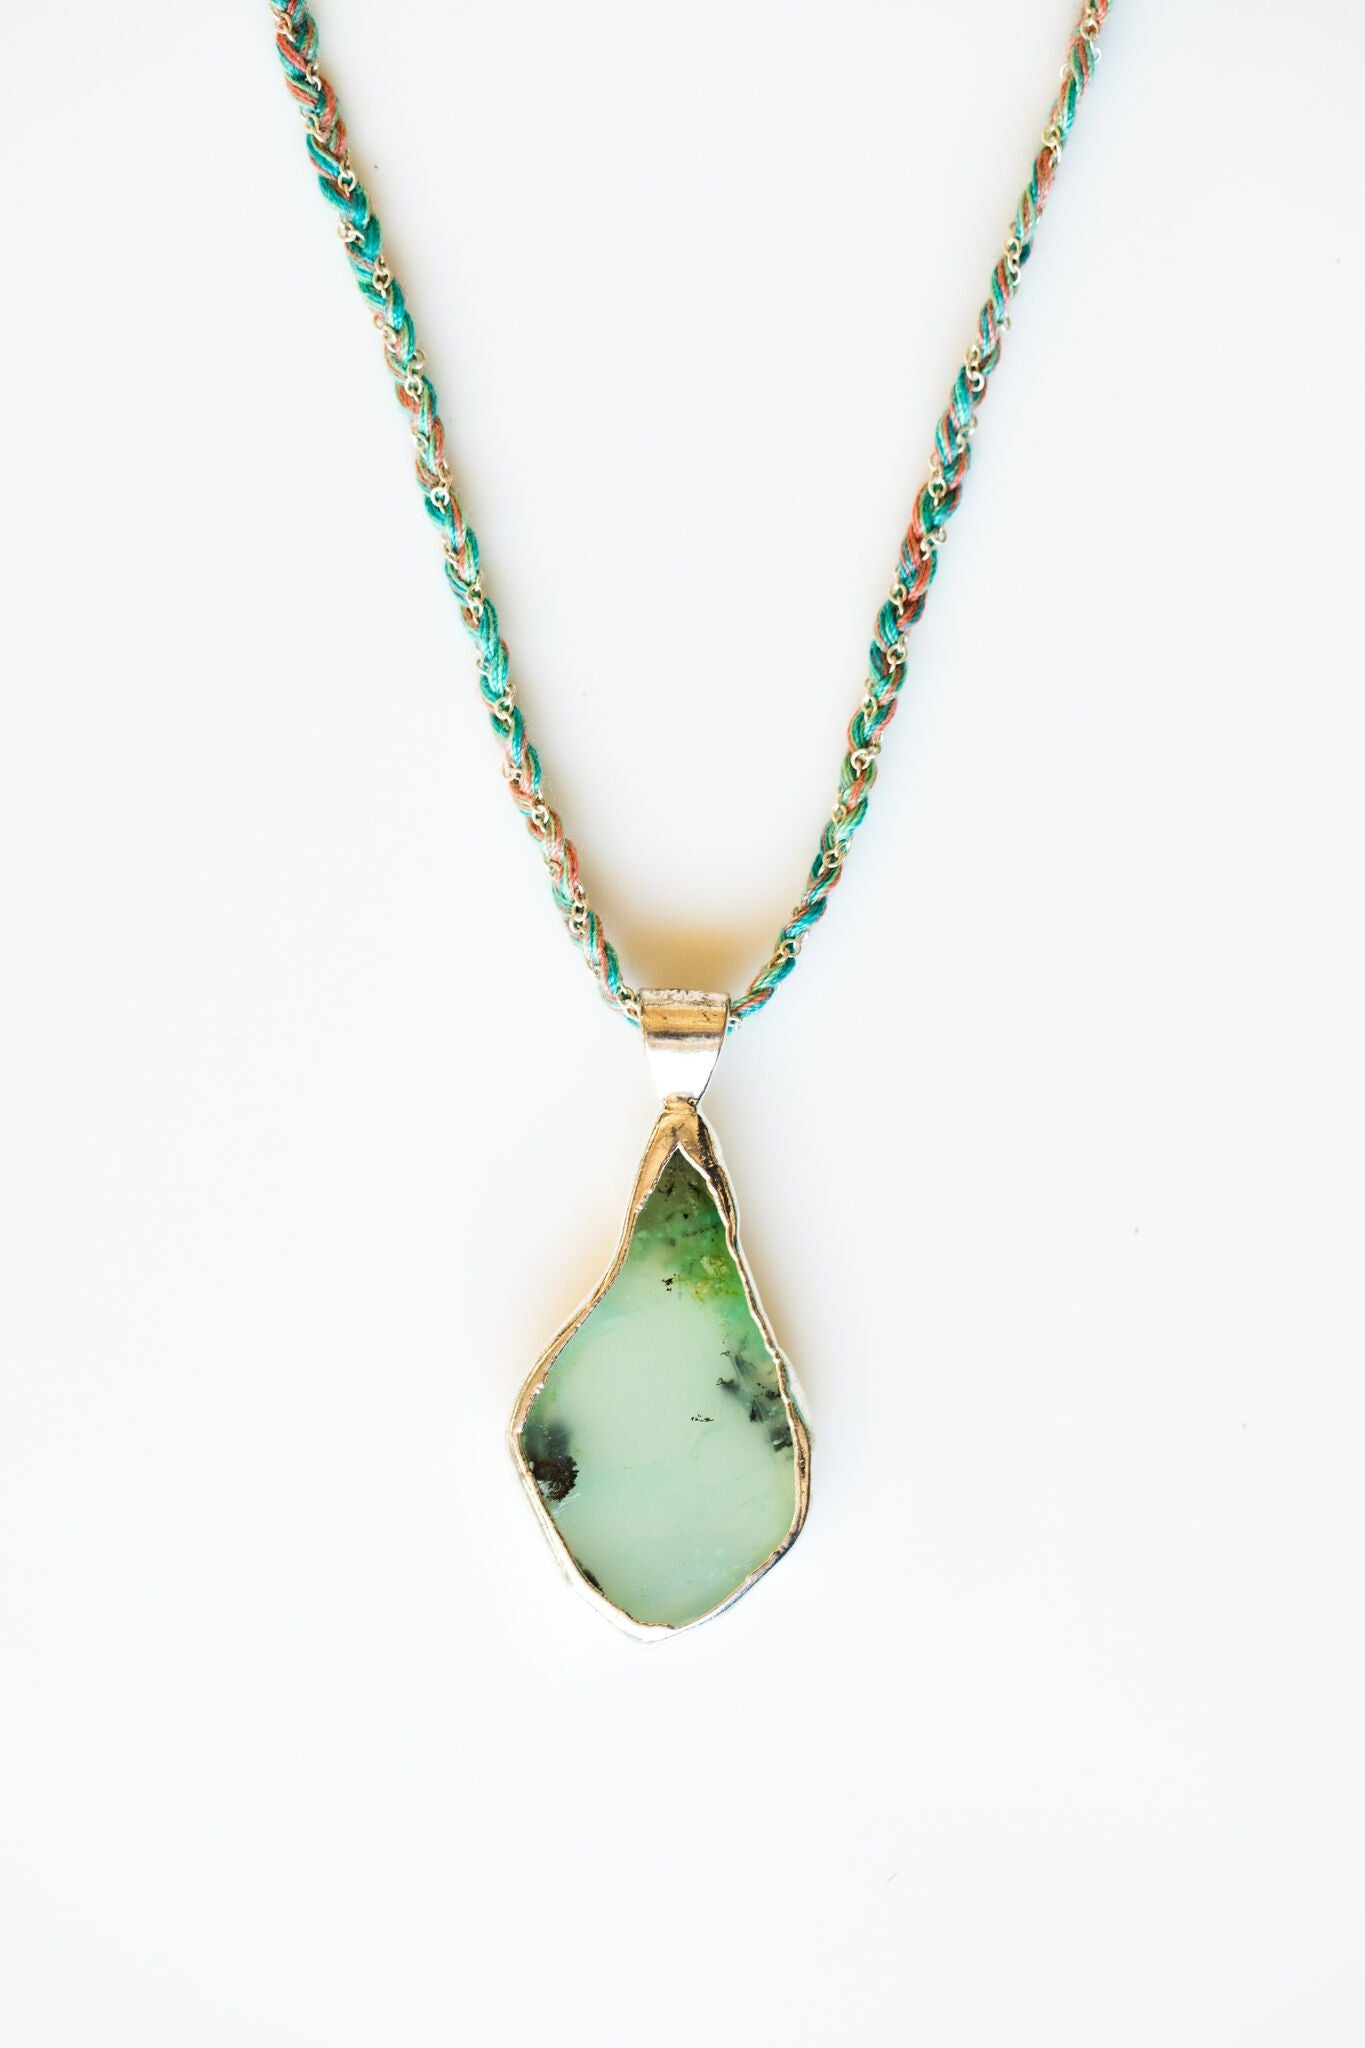 NALANI CHRYSOPRASE NECKLACE